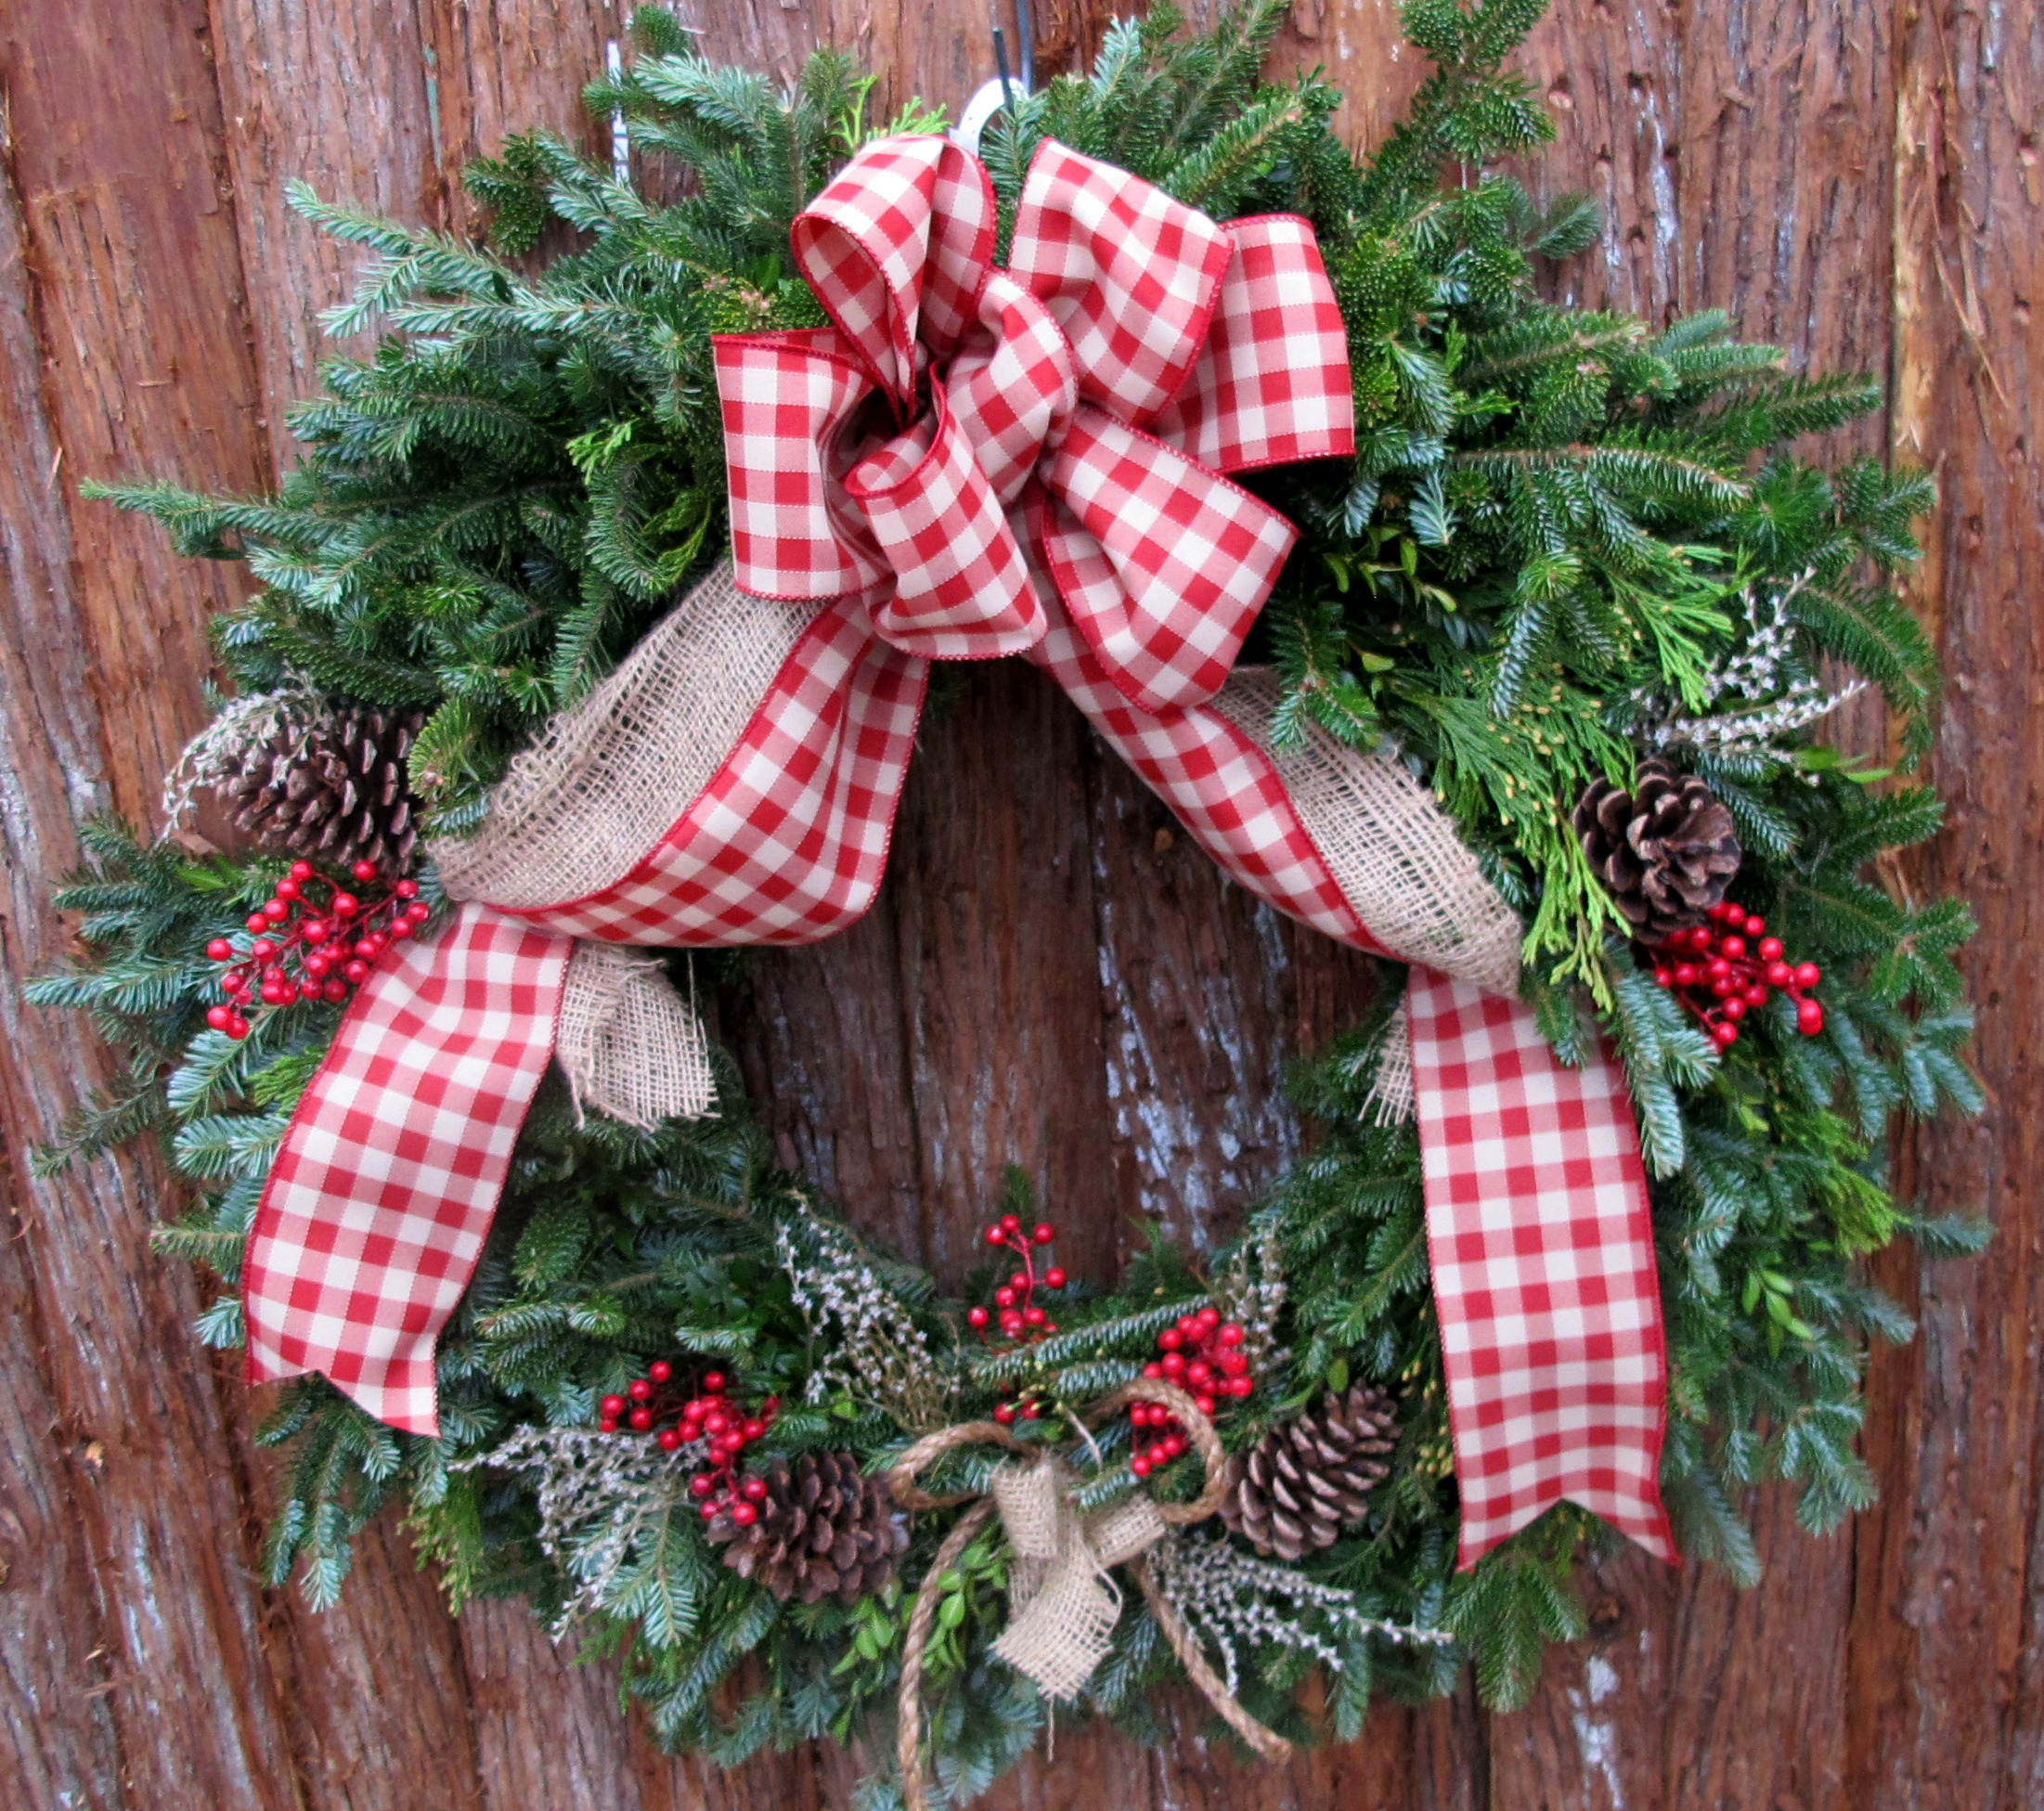 W- Country wreath with twine.jpg